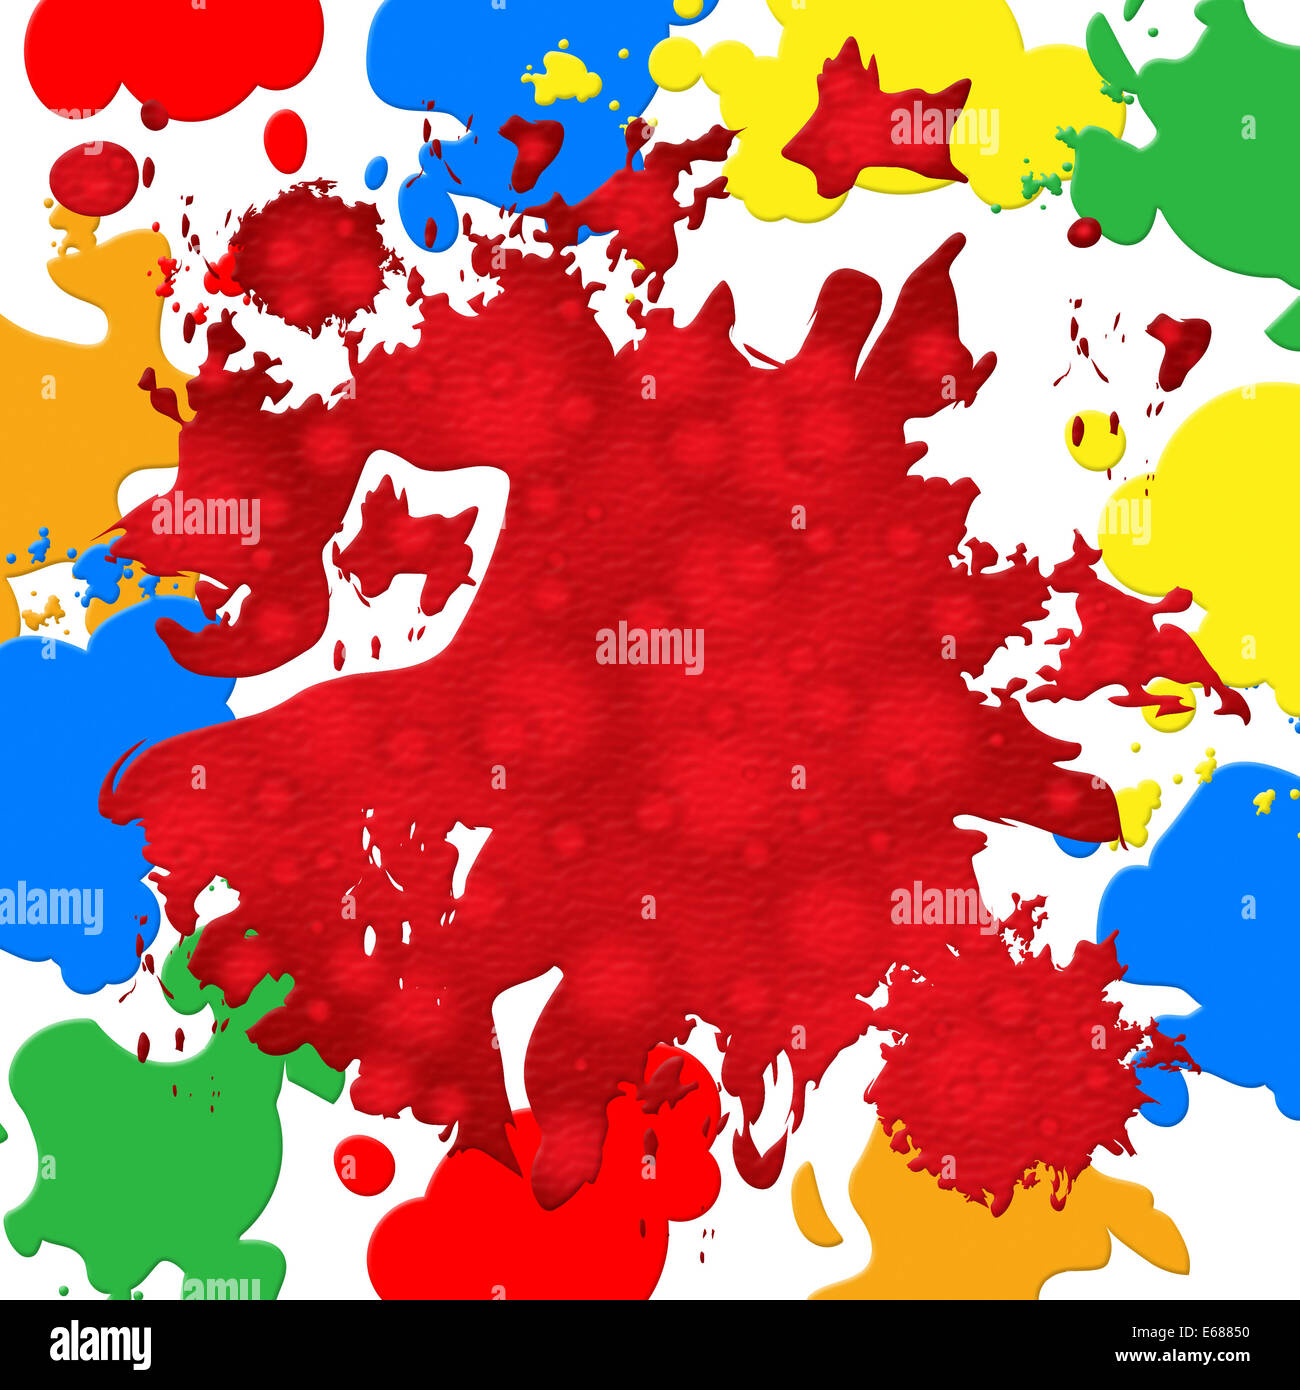 Paint Color Meanings splash color meaning paint colors and design stock photo, royalty